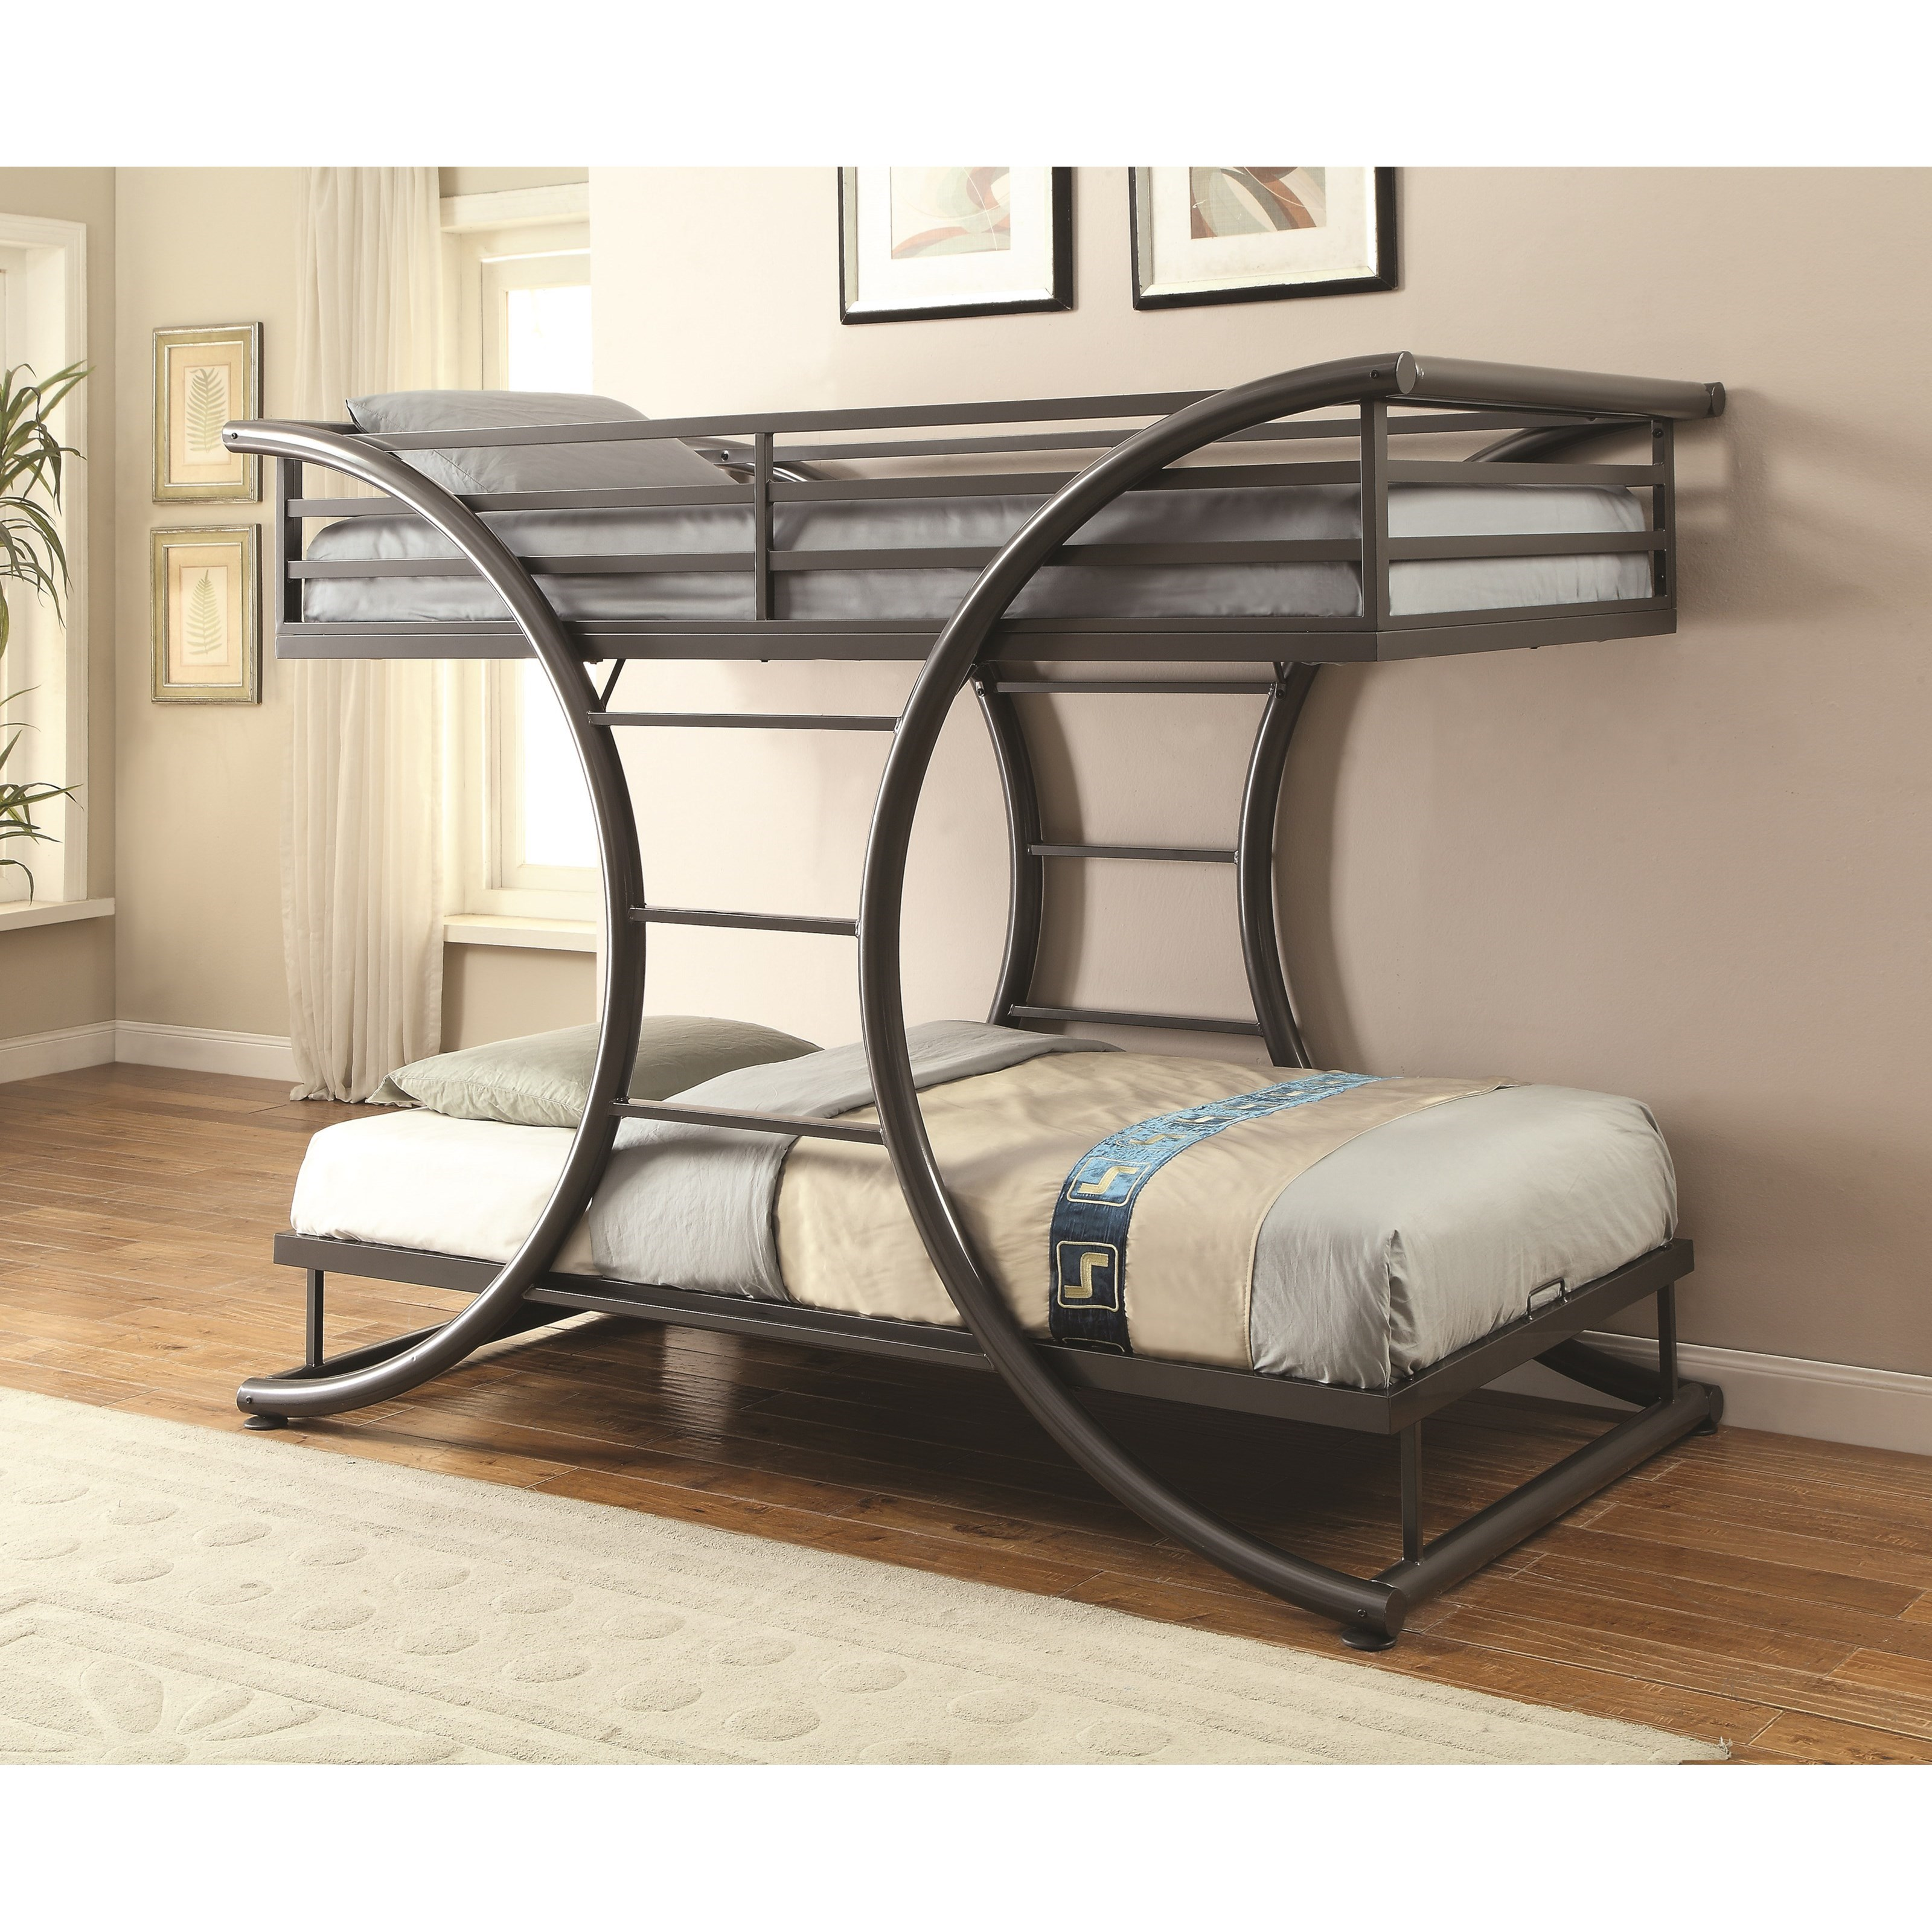 Coaster Bunks 461078 Twin Over Twin Contemporary Bunk Bed